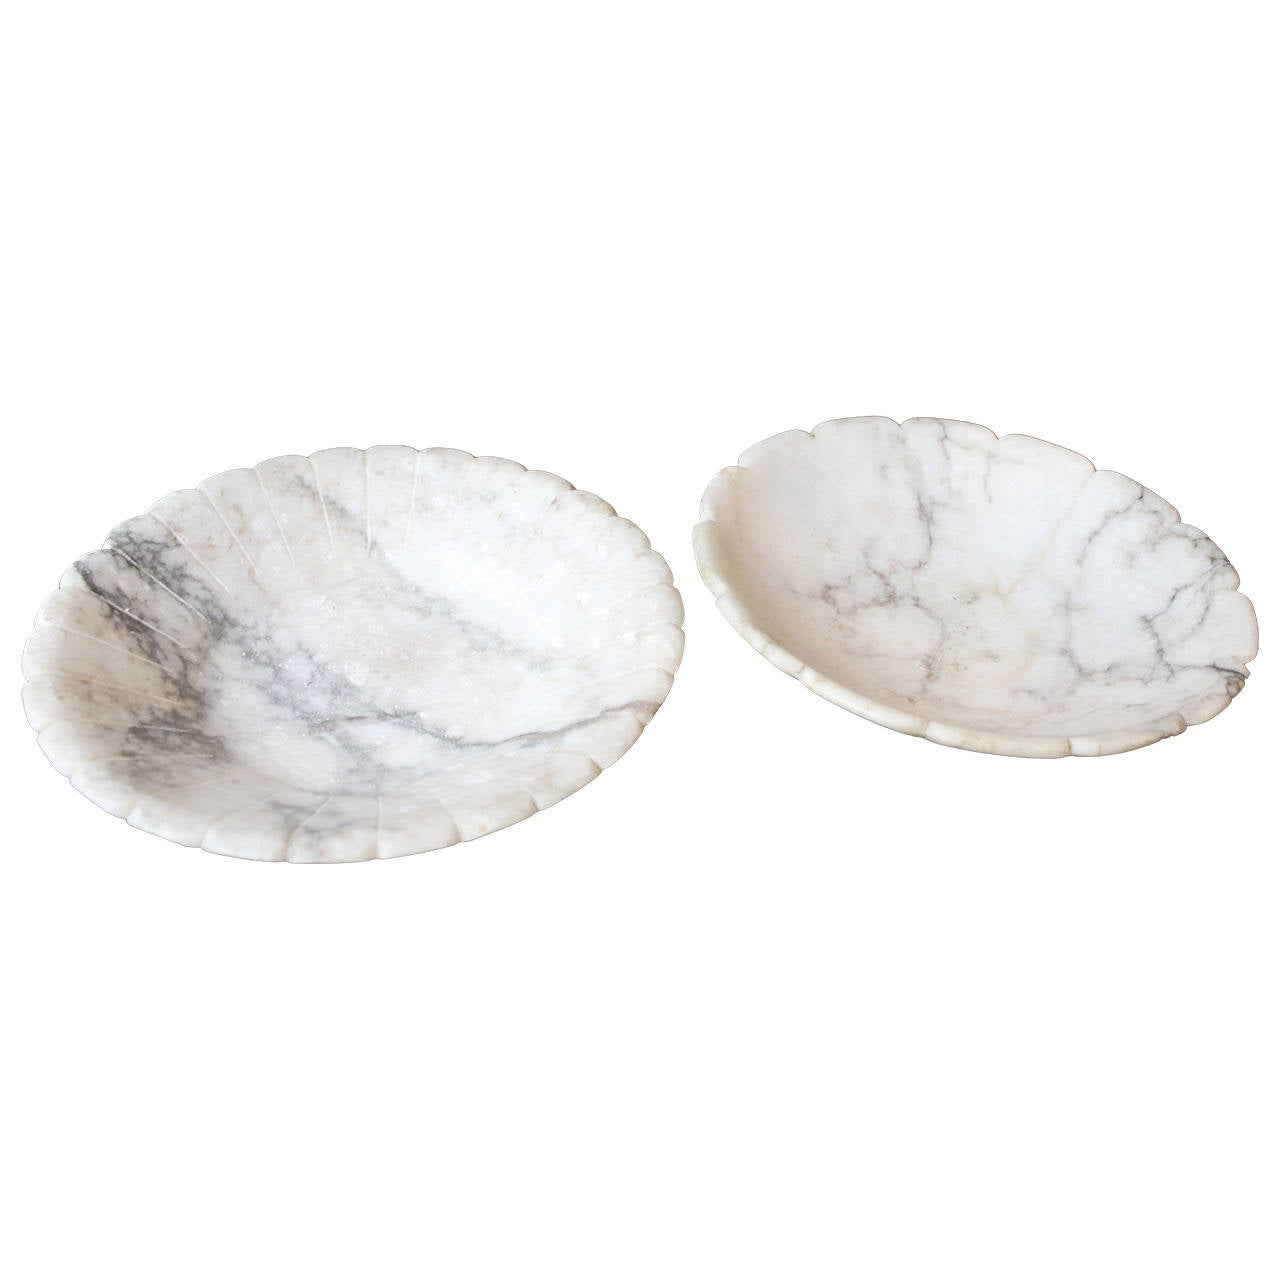 Lot of Two-Carved White Carrara Marble Footed Bowls